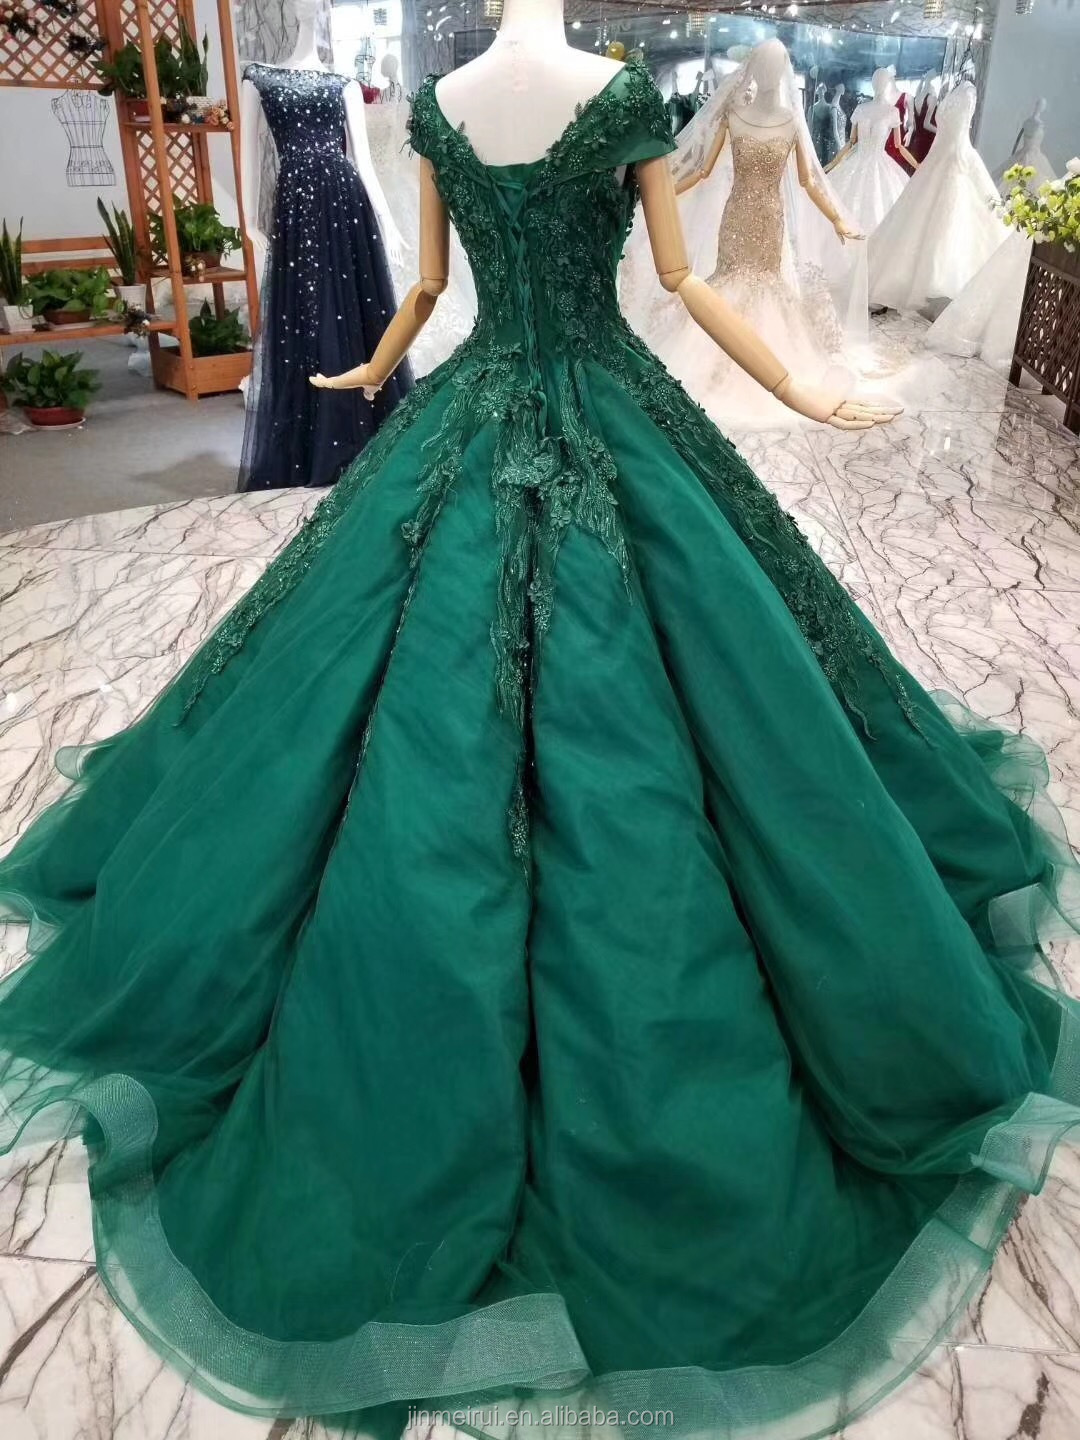 Hiqh Quality Embroidery Lace Emerald Green Evening Dresses Ruched Skirt Ball Gown Corset Long Prom Gown